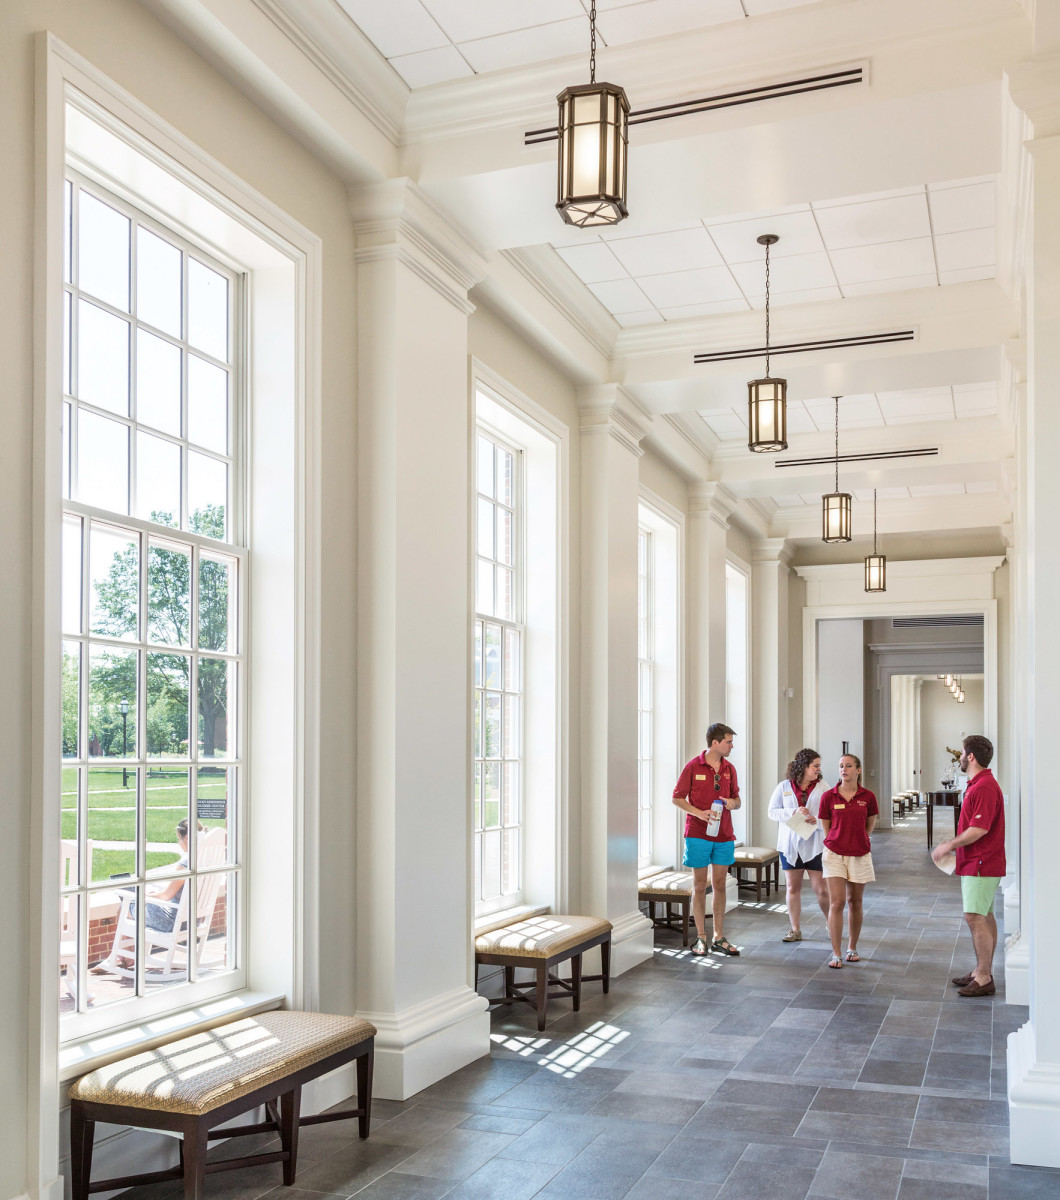 Elon University's Admissions Welcome Center interior